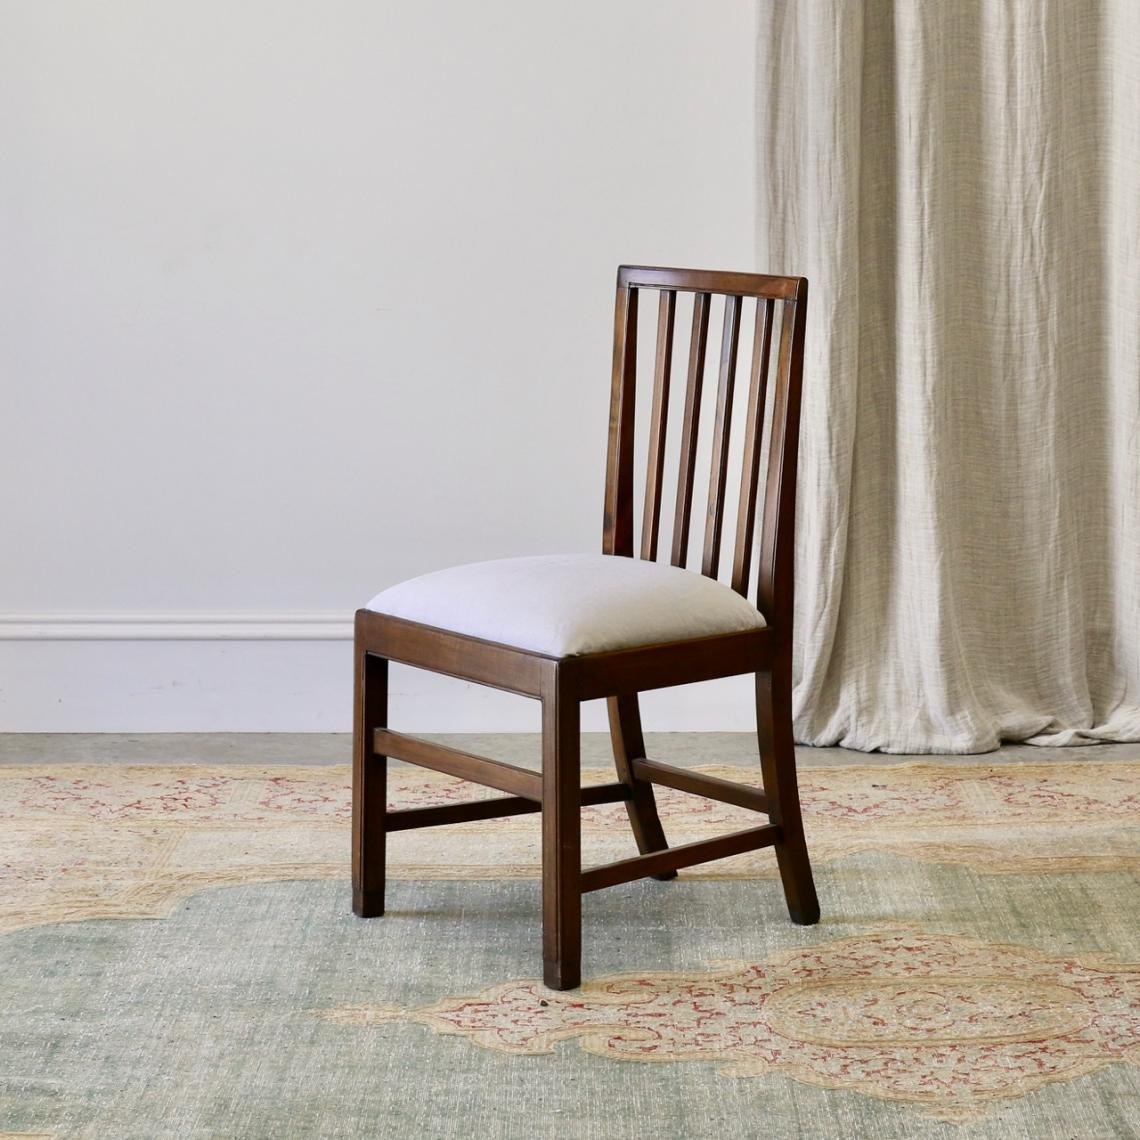 113-90 - WD Dining Chair